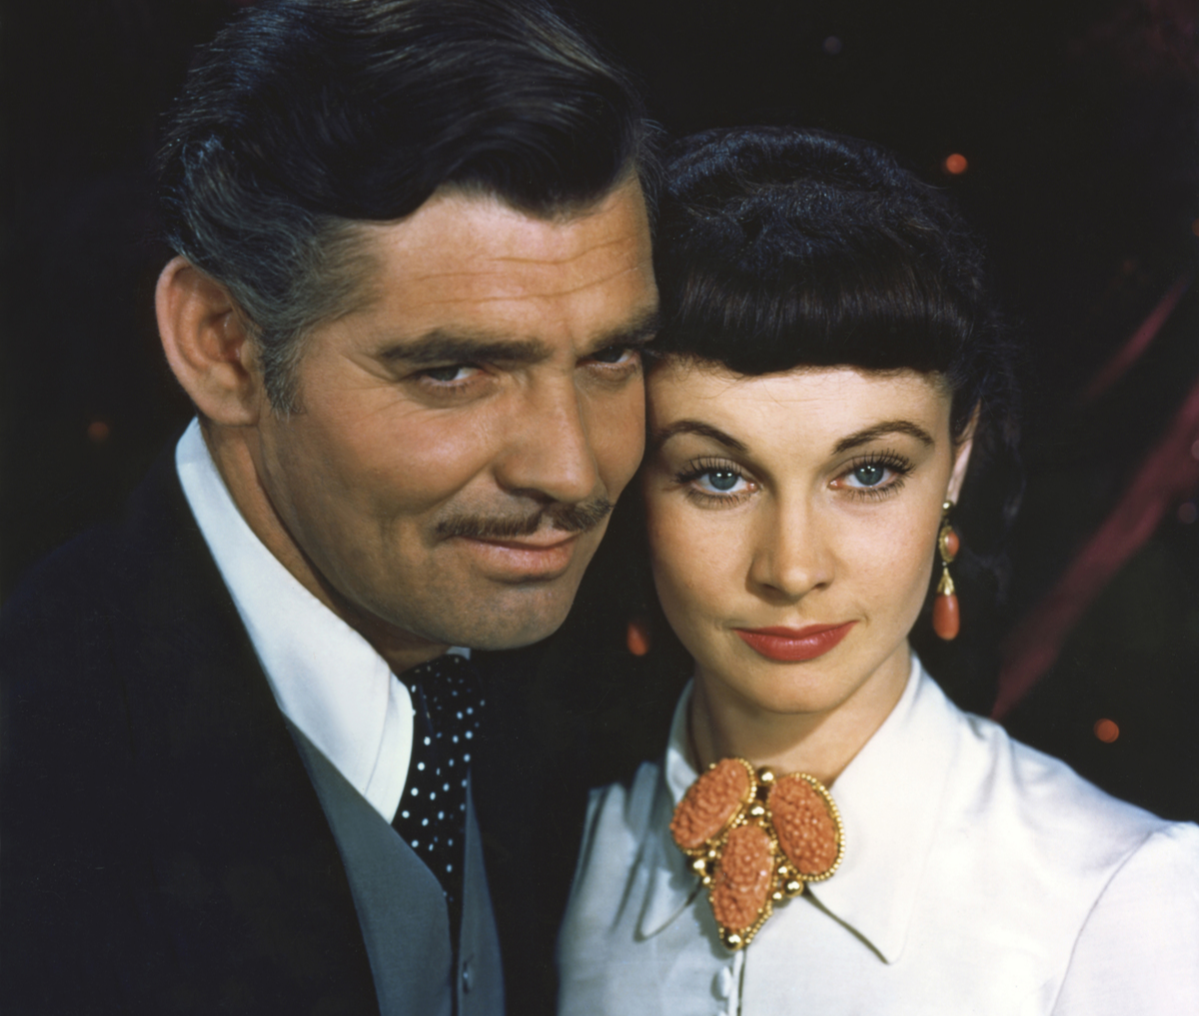 American actor Clark Gable and British actress Vivien Leigh on the set of Gone with the Wind, 1939